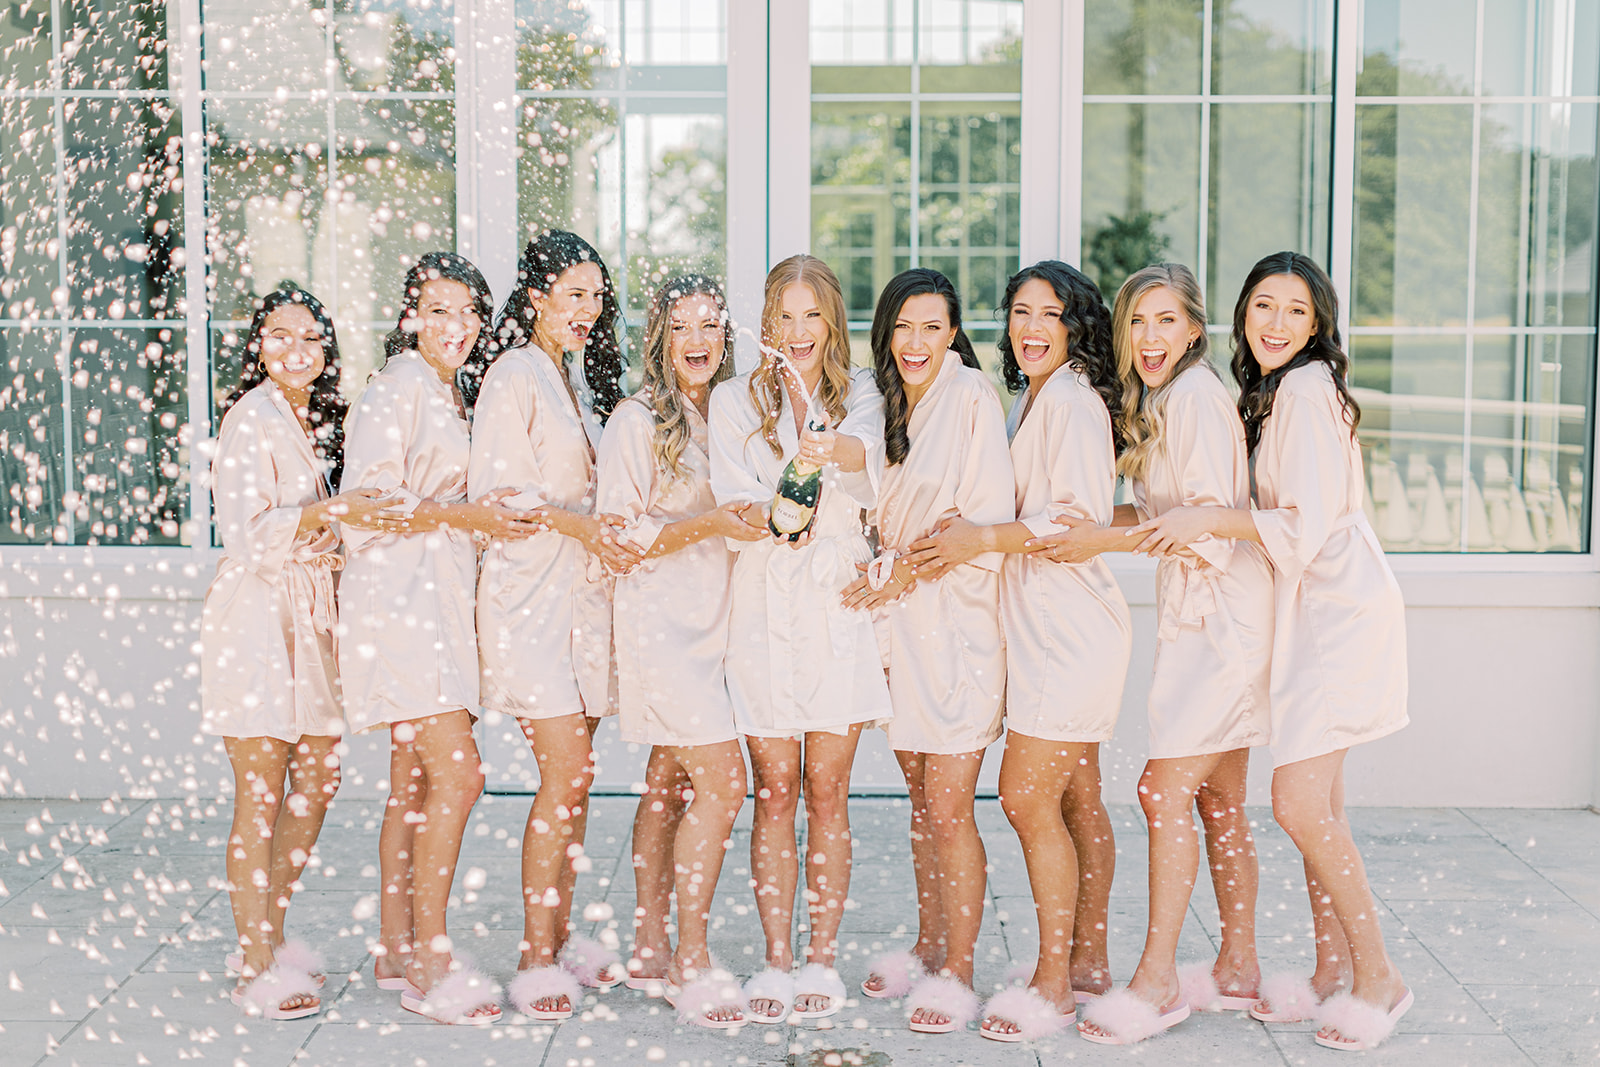 Bridal party in pink robes popping champagne